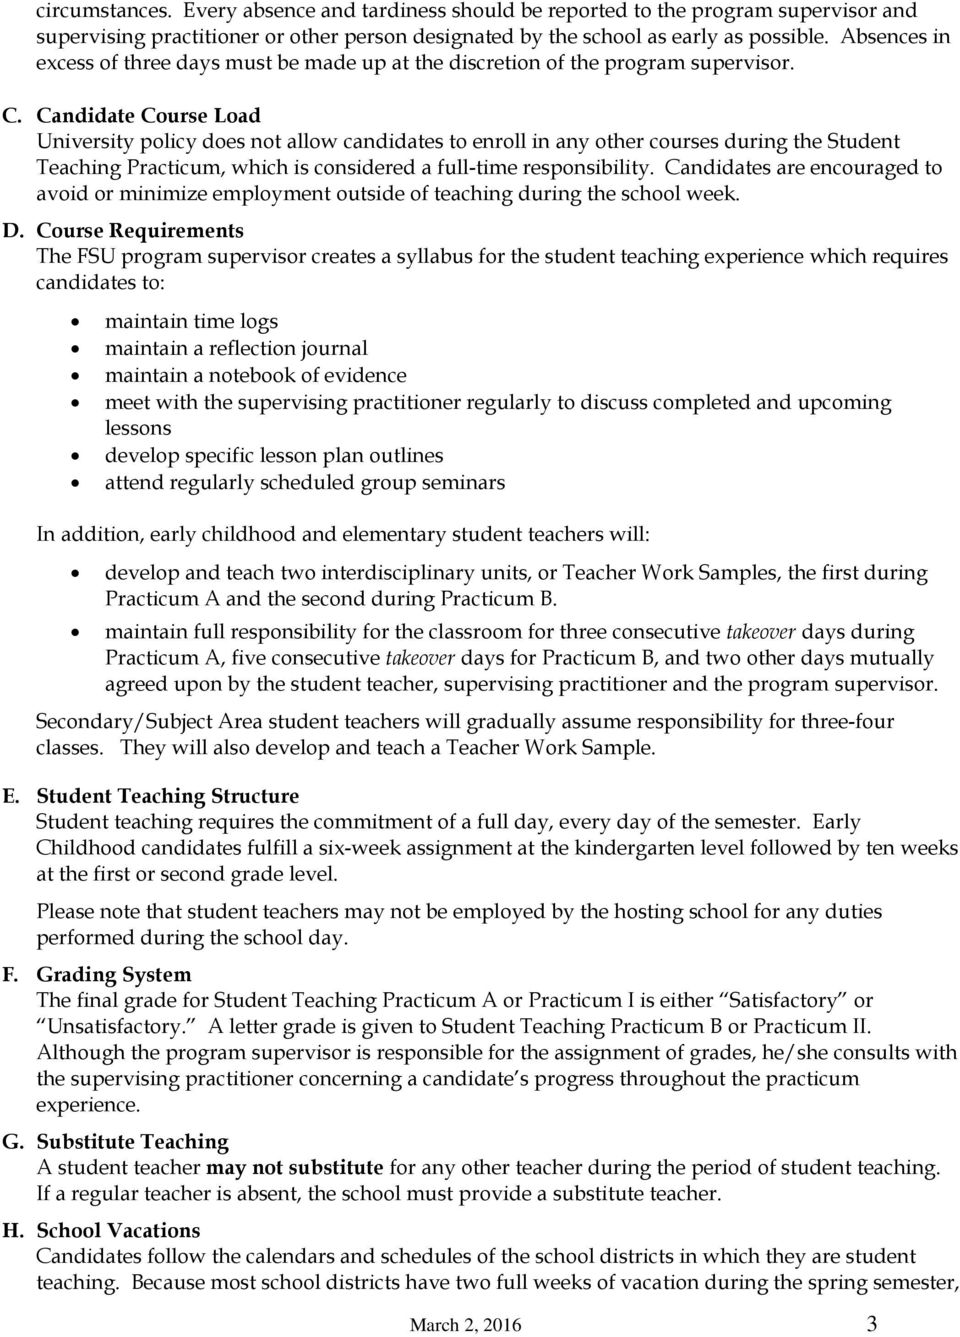 Candidate Course Load University policy does not allow candidates to enroll in any other courses during the Student Teaching Practicum, which is considered a full-time responsibility.